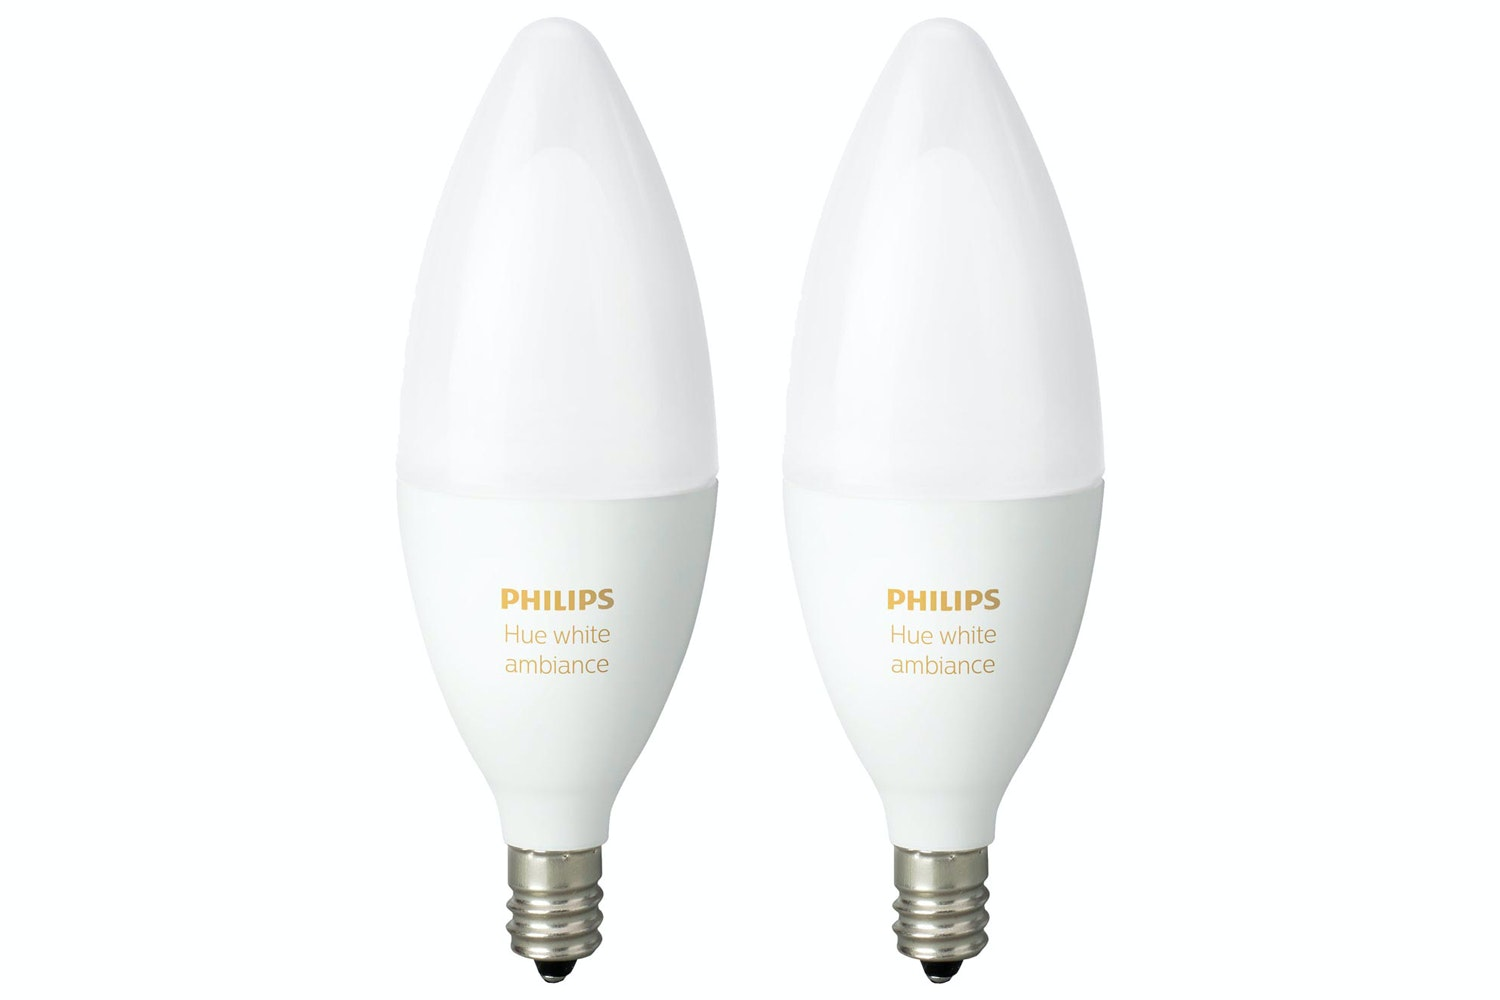 Philips Hue White Ambiance E14 Twin Pack